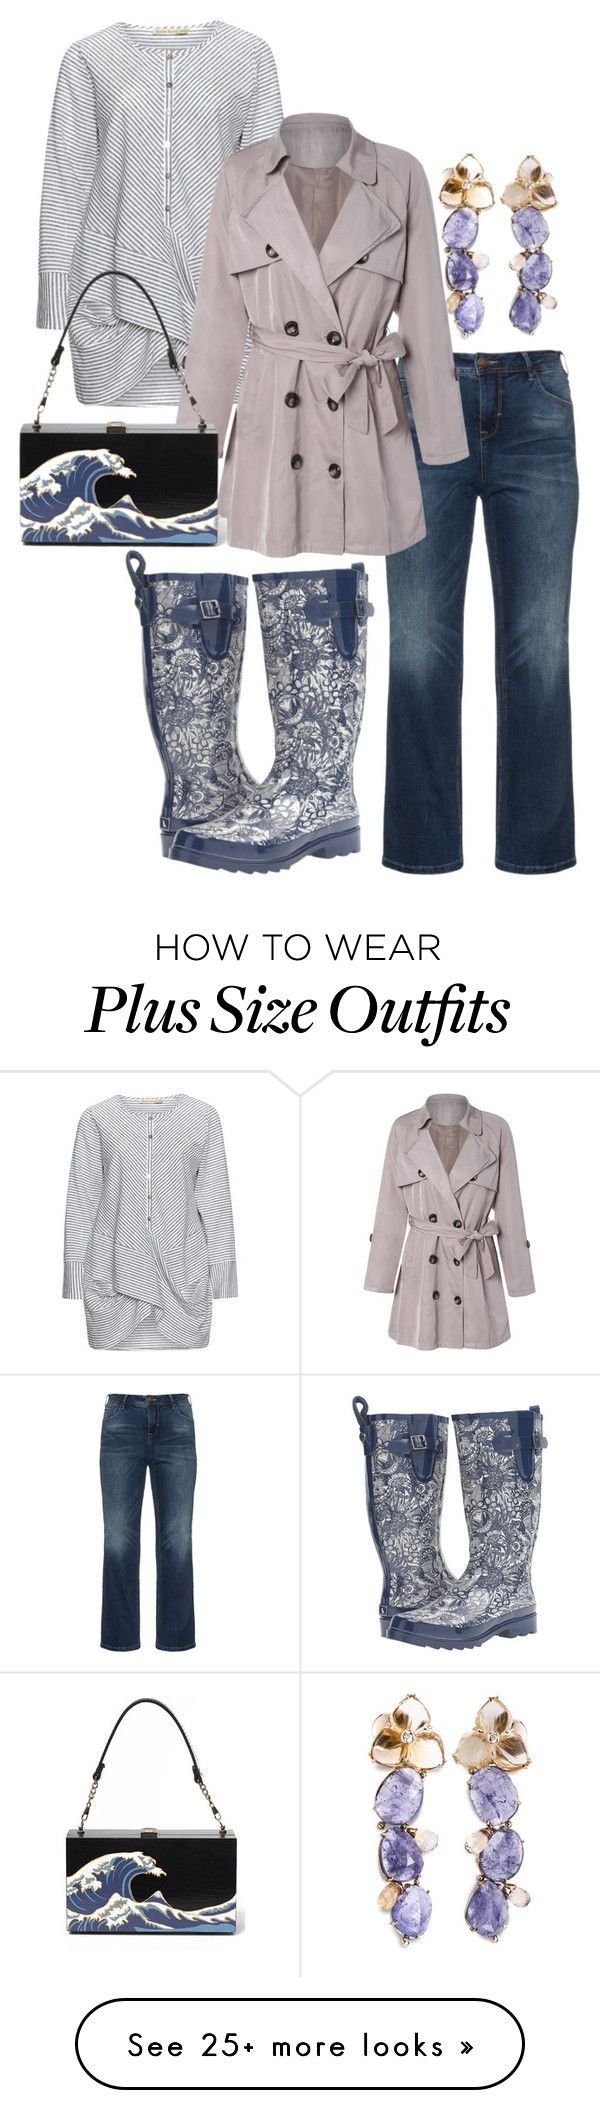 """plus size pearl"" by aleger-1 on Polyvore featuring Sakroots, Zizzi and Isolde Roth"